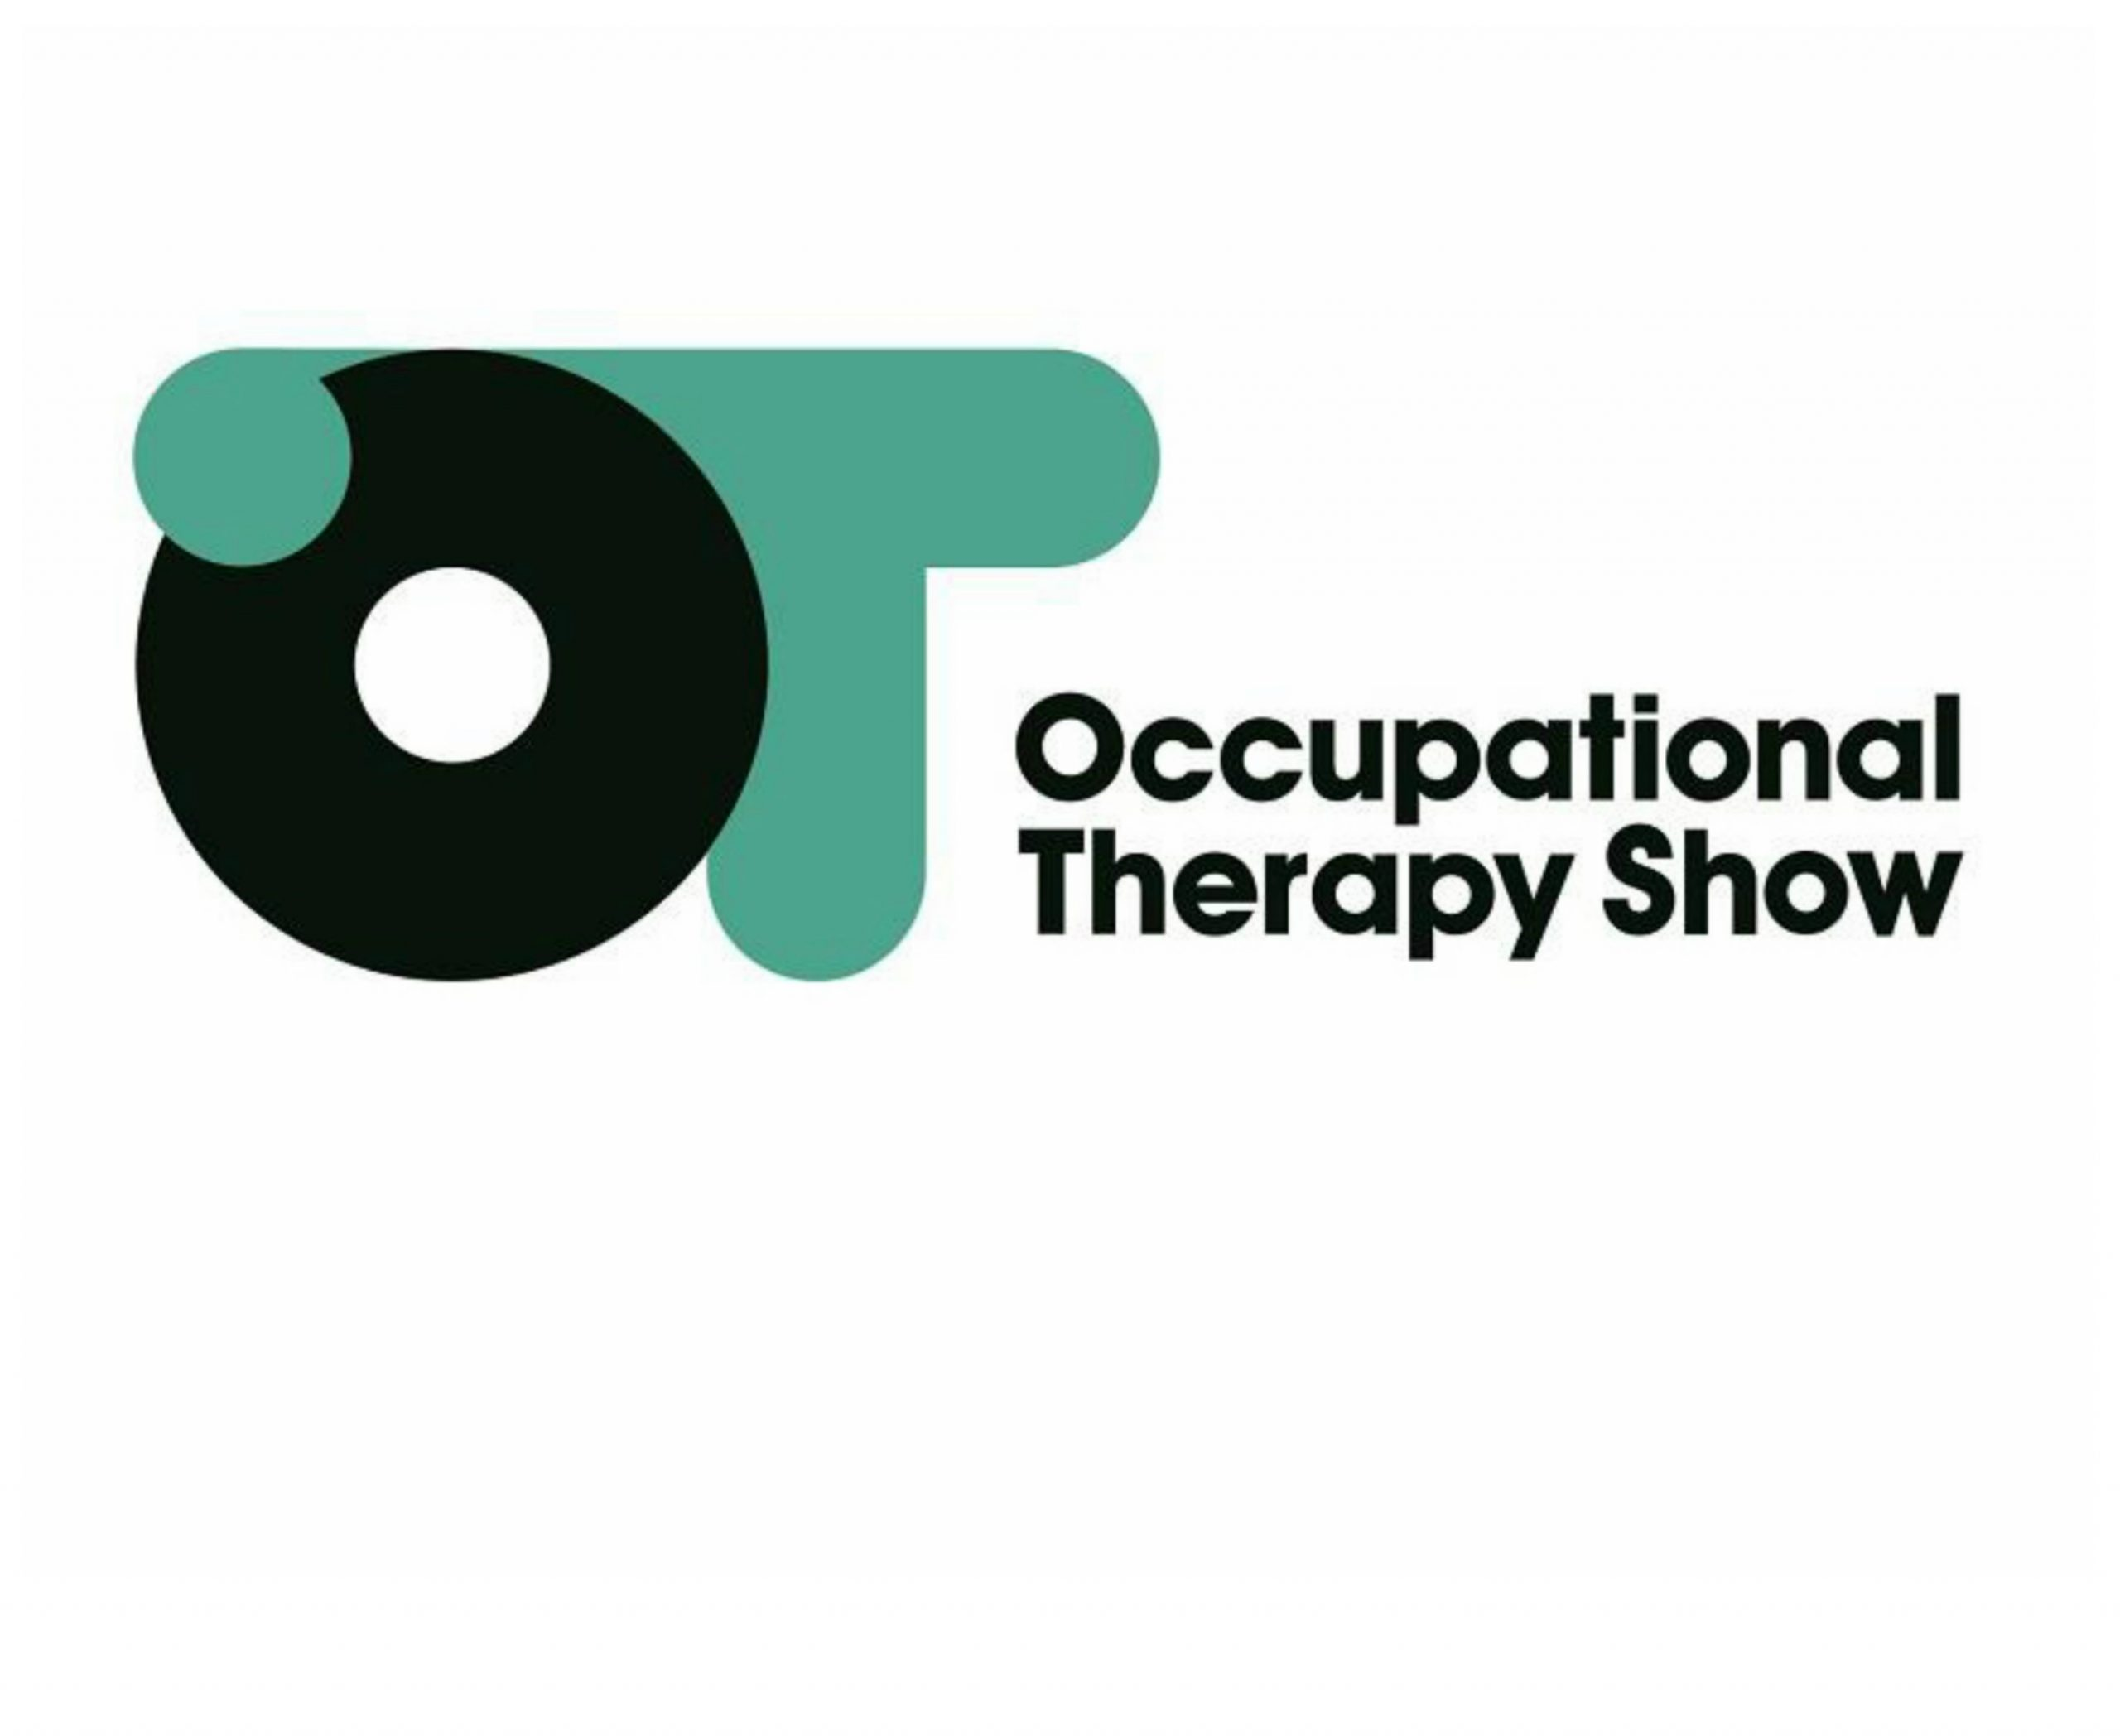 Occupational Therapy Show 2020